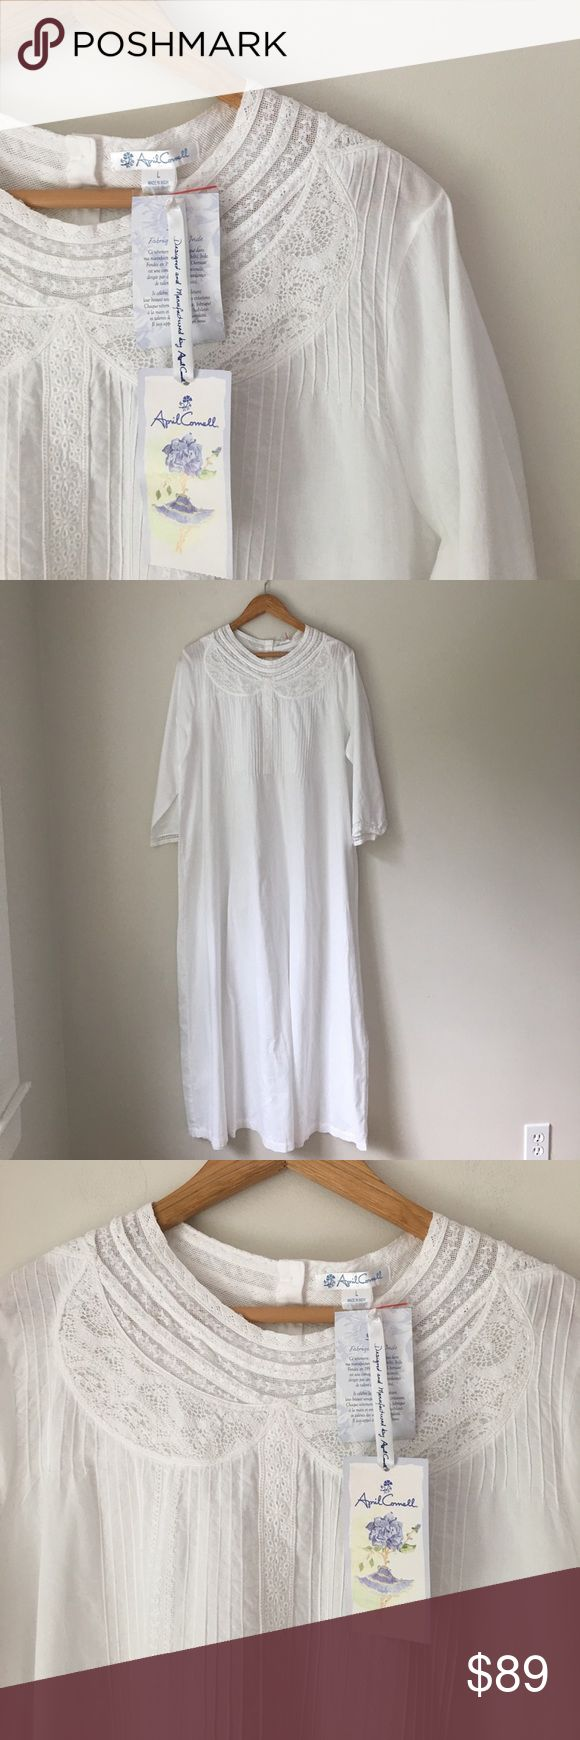 April Cornell White Full Length Night Gown Gorgeous white 109% cotton classic full length night gown by April Cornell. Size Large. NWT. April Cornell Intimates & Sleepwear